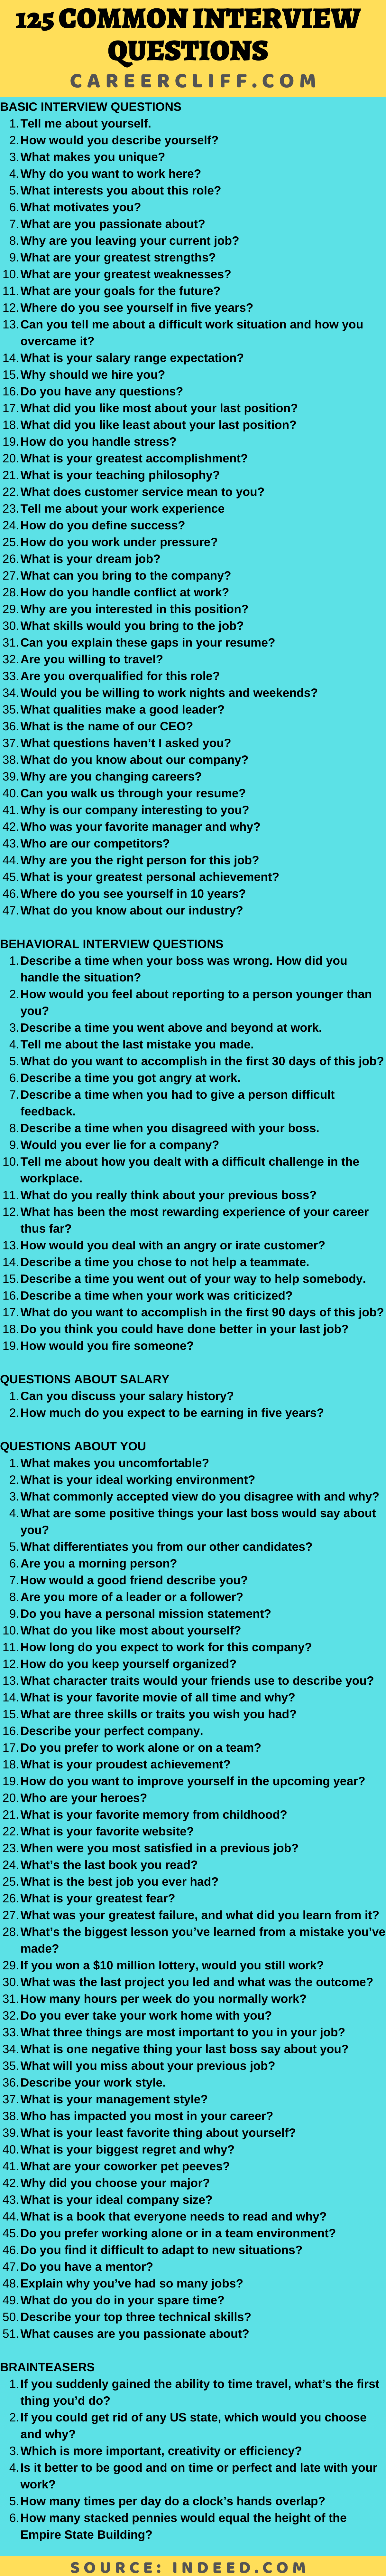 common interview questions job interview questions job interview questions and answers sample job interview questions and answers typical interview questions most common interview questions common interview questions and answers general interview questions common job interview questions possible interview questions common interview questions and answers for freshers standard interview questions commonly asked interview questions frequently asked interview questions most asked interview questions popular interview questions common phone interview questions common behavioral interview questions typical job interview questions job interview questions and answers examples possible question in job interview typical phone interview questions possible interview questions and answers interview questions and answers sample most common job interview questions sample job interview questions and best answers likely interview questions most popular interview questions most commonly asked interview questions typical interview questions and answers 150 most common interview questions general interview questions and answers most common behavioral interview questions basic job interview questions common hr interview questions most frequently asked interview questions normal interview questions most common interview questions and answers answers to common interview questions common job interview questions and answers common behavioural interview questions 10 most common interview questions common college interview questions 10 common interview questions 31 common interview questions frequent interview questions common internship interview questions frequently asked interview questions and answers common medical school interview questions standard nhs interview questions interview basic questions usual interview questions common cashier interview questions and answers most common phone interview questions interview q and a common questions during interview possible question and answer